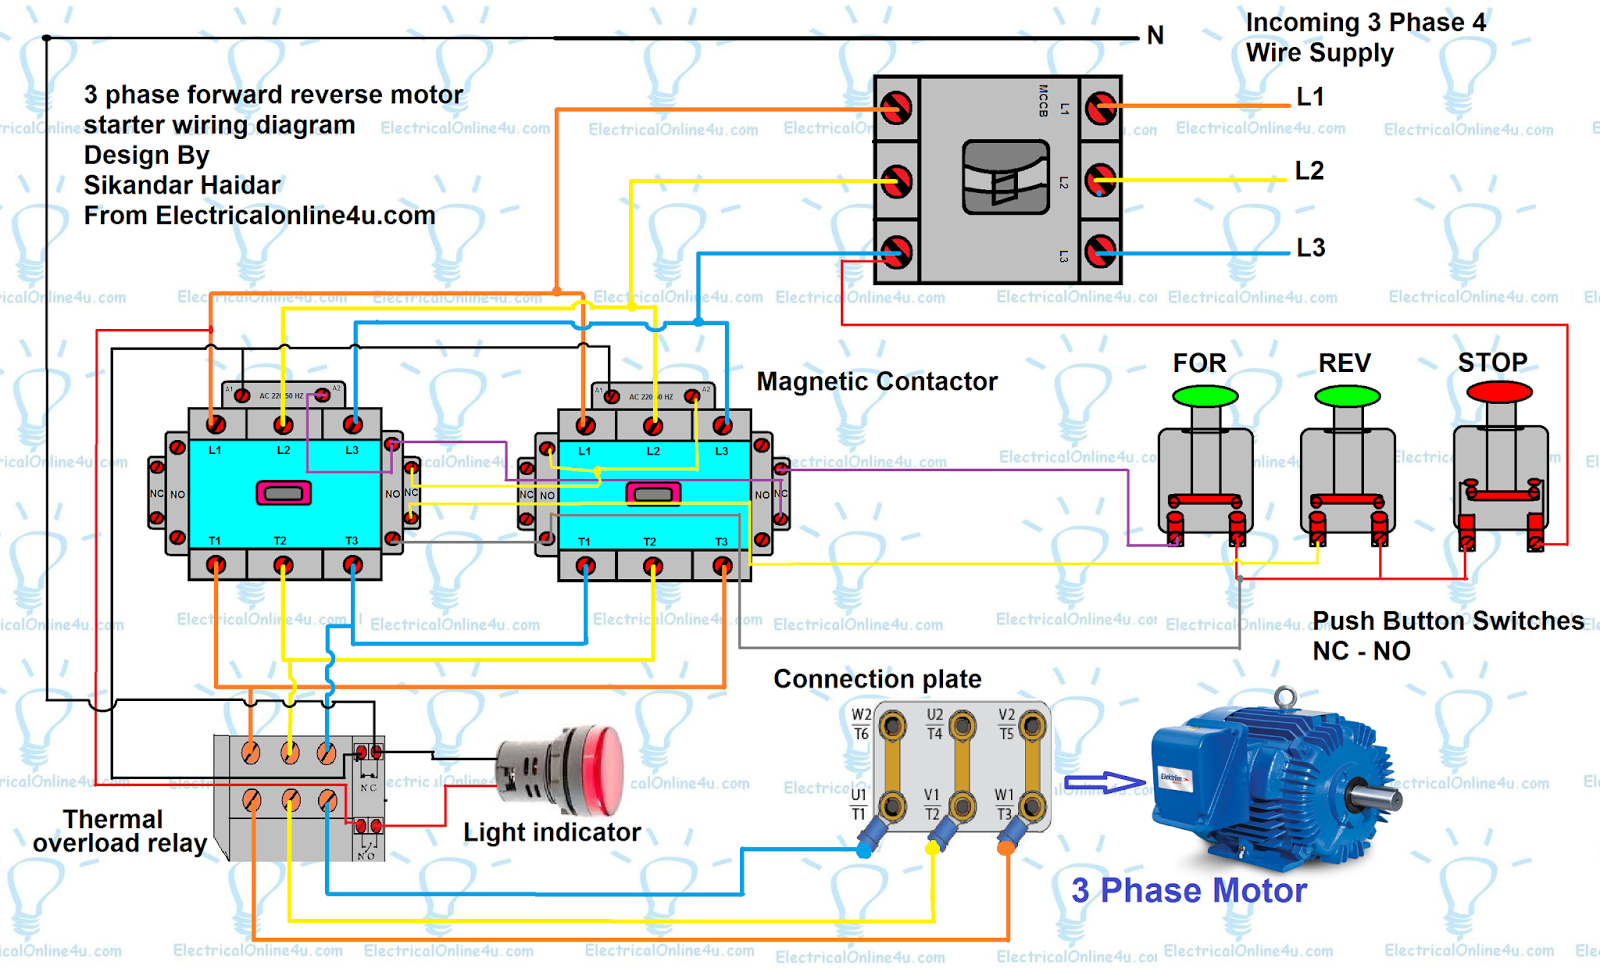 Three Phase Motor Starter Wiring Diagram from 4.bp.blogspot.com